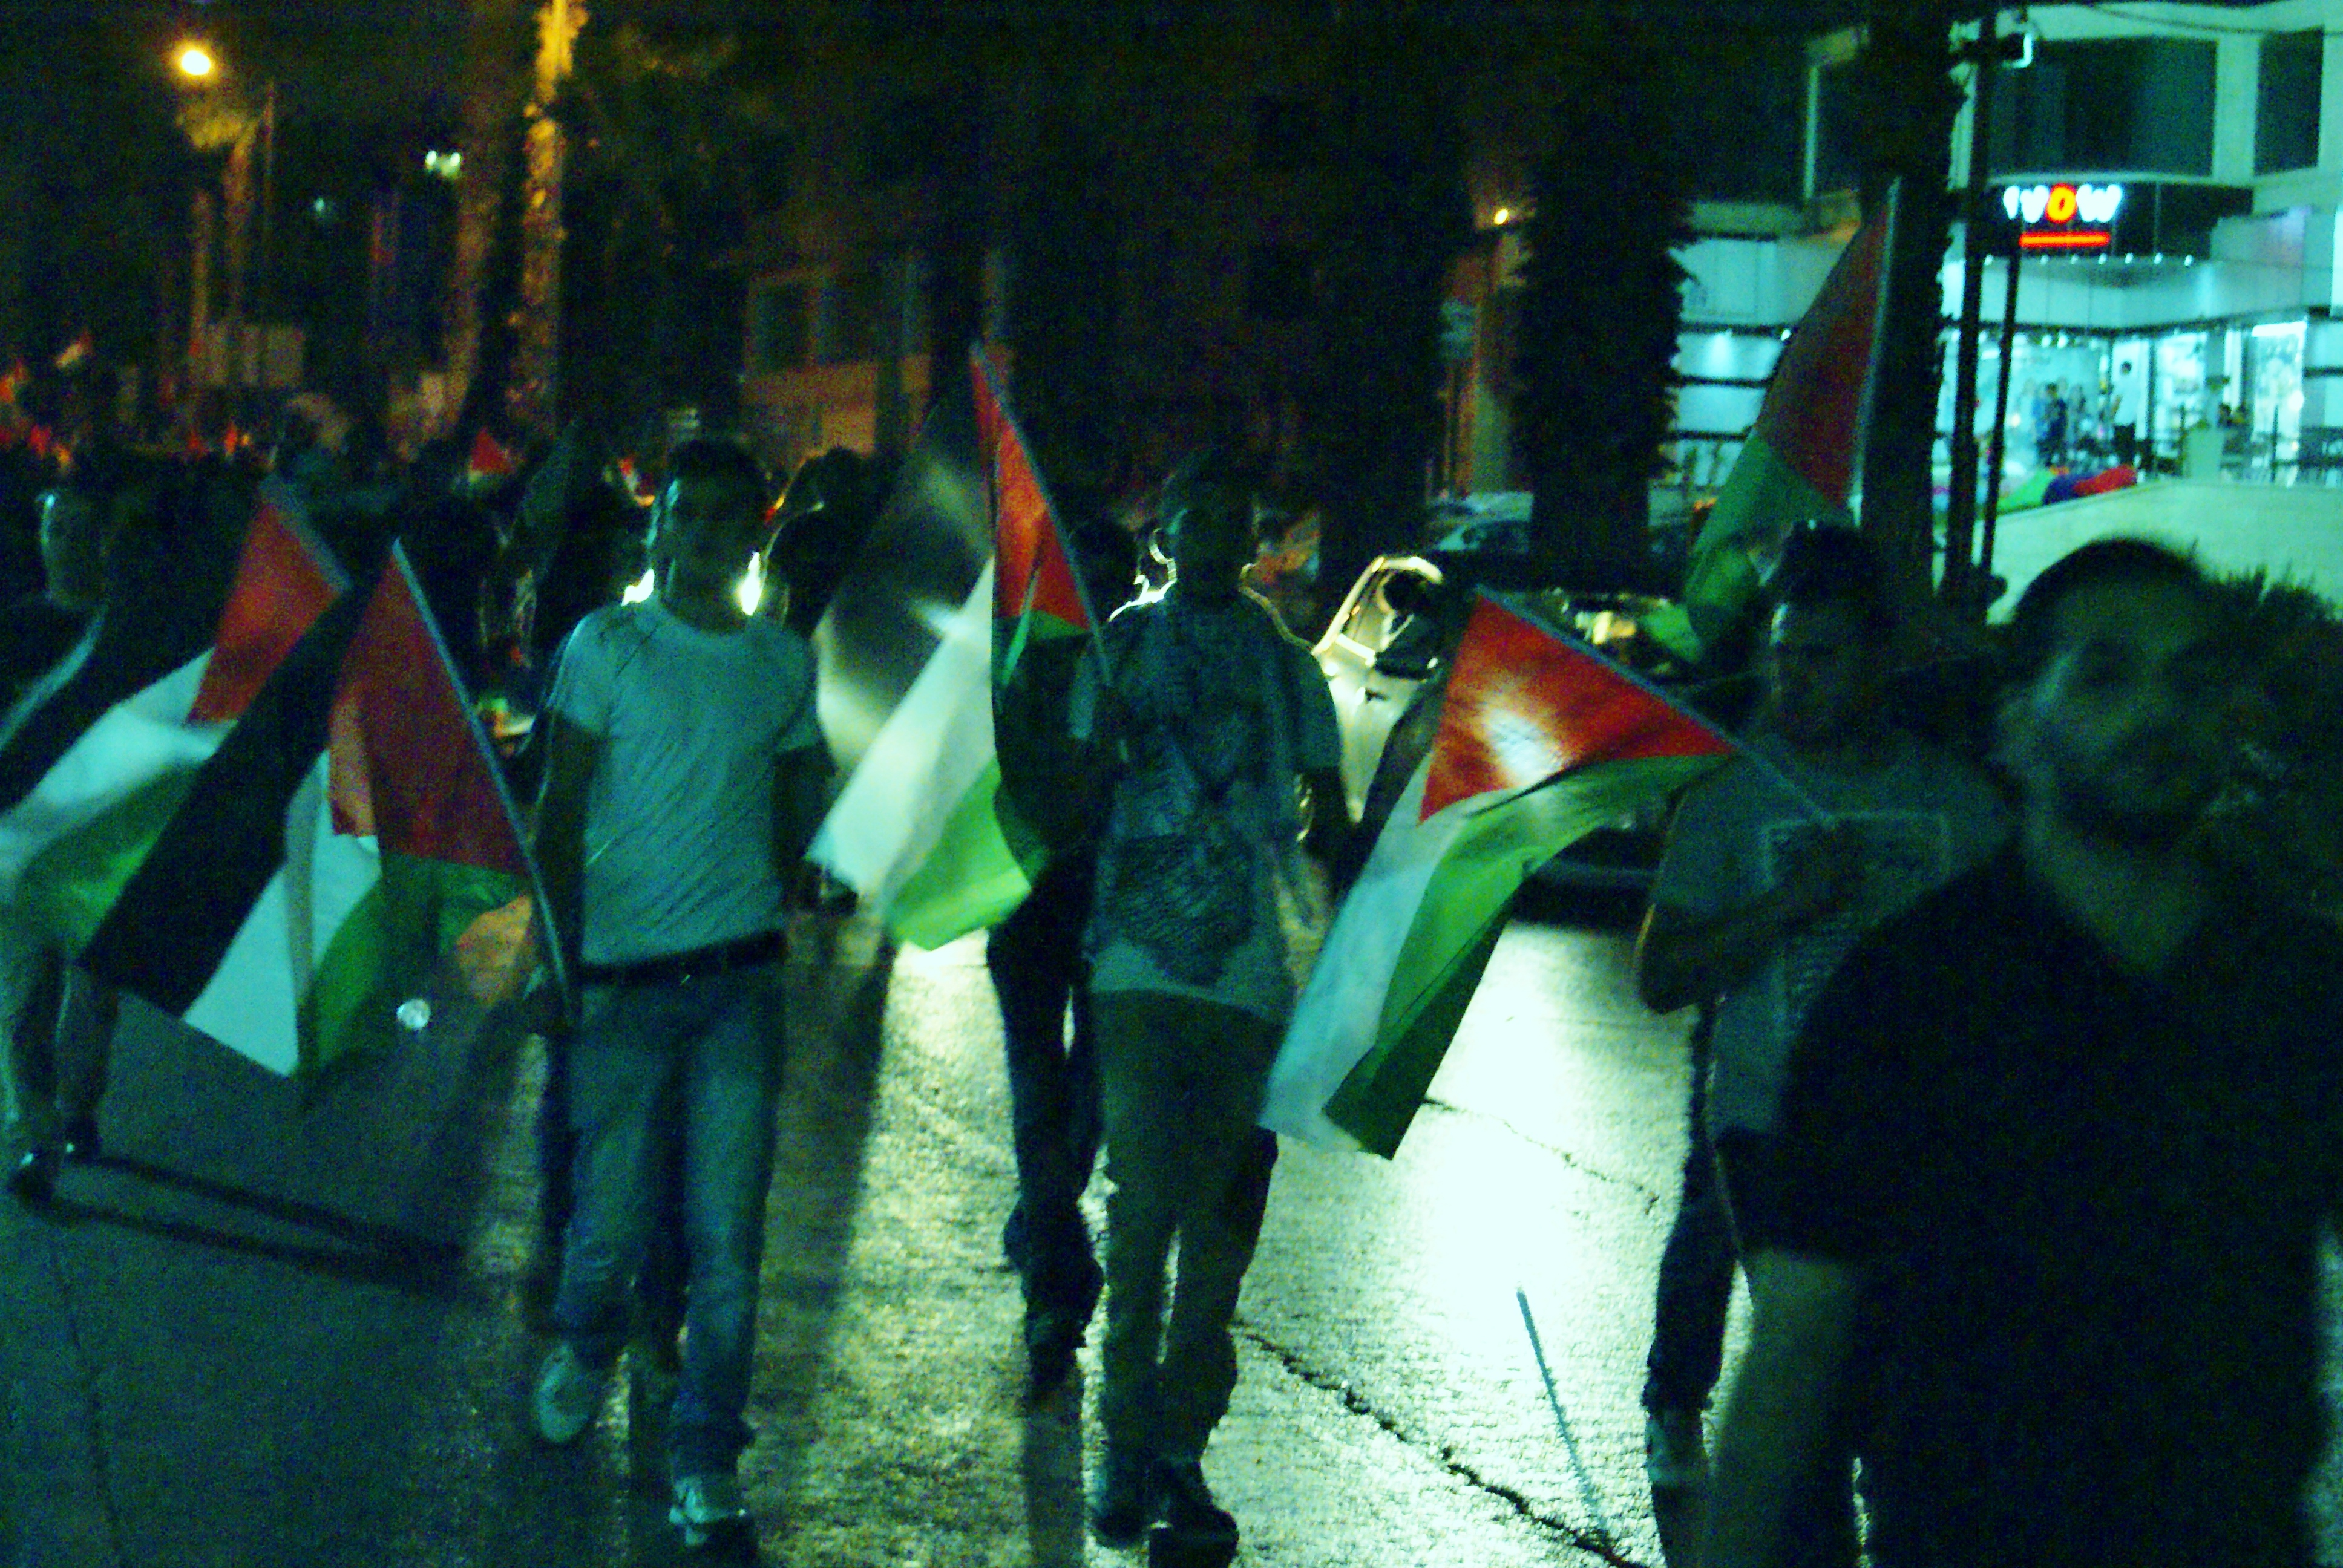 July 24, 2014 protests in Ramallah, West Bank ((c) Khalid Diab)